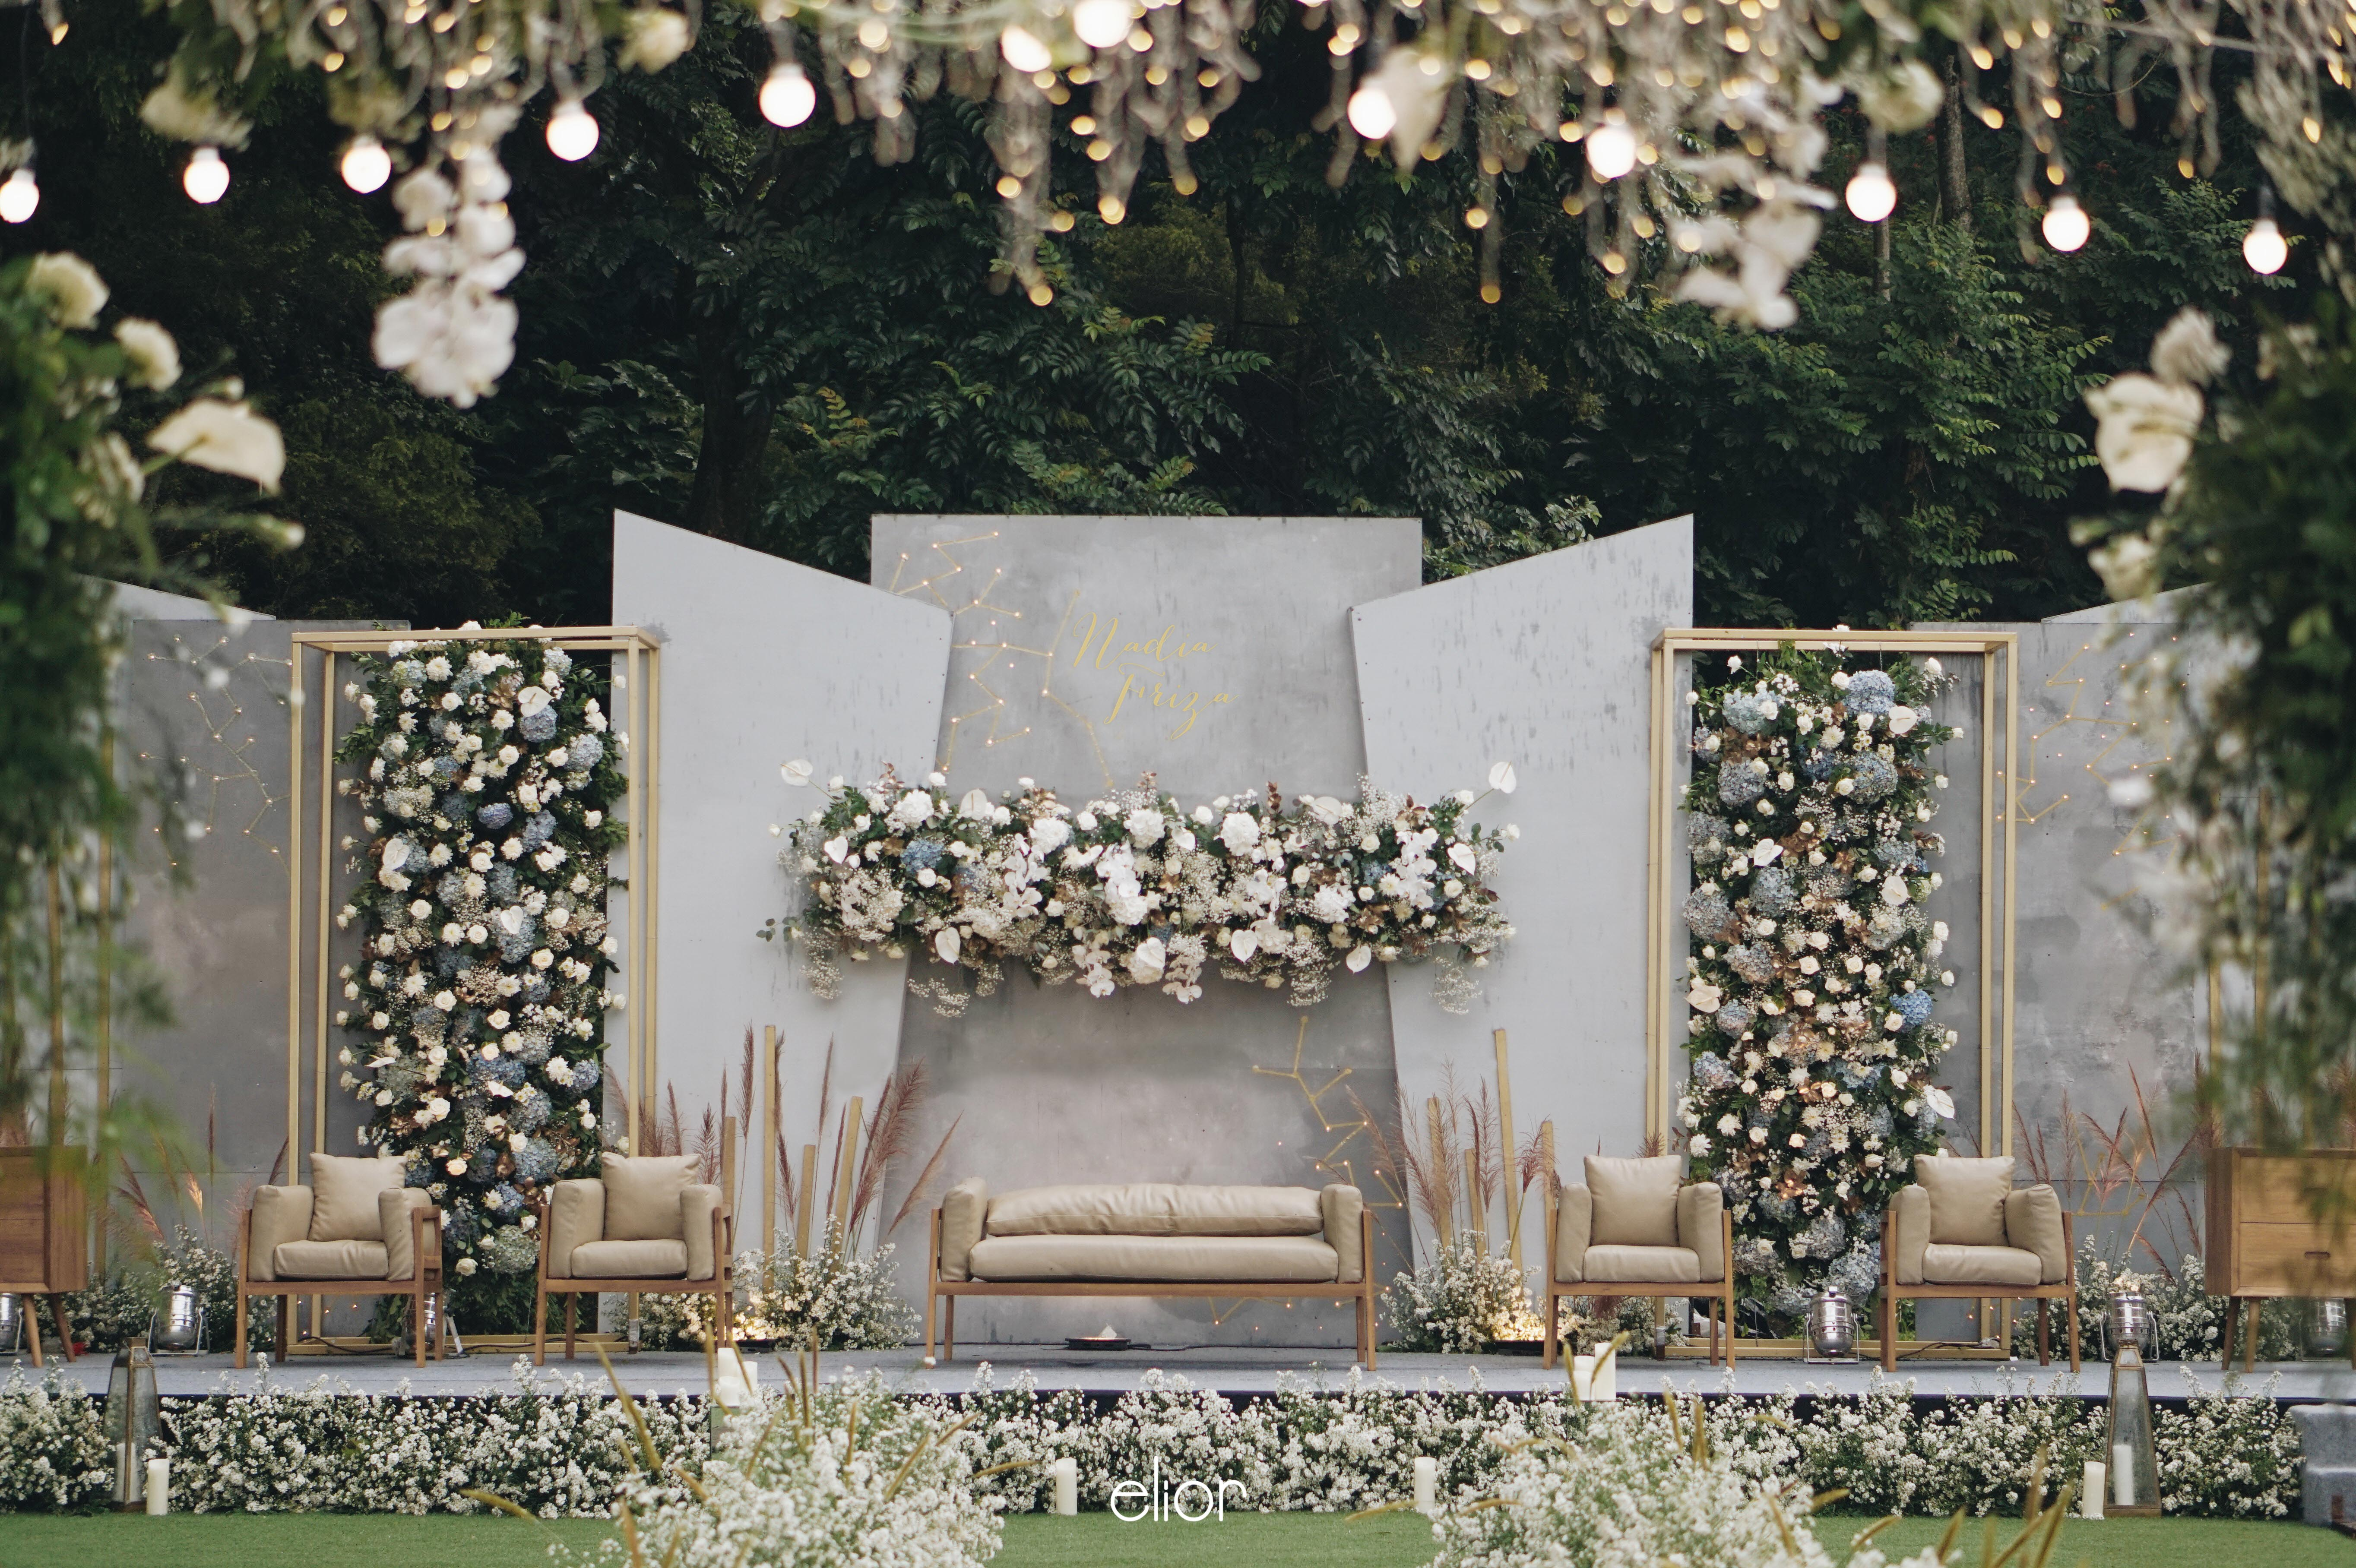 17 Modern Wedding Stage Design and Decor Inspirations You'll Love -  Bridestory Blog